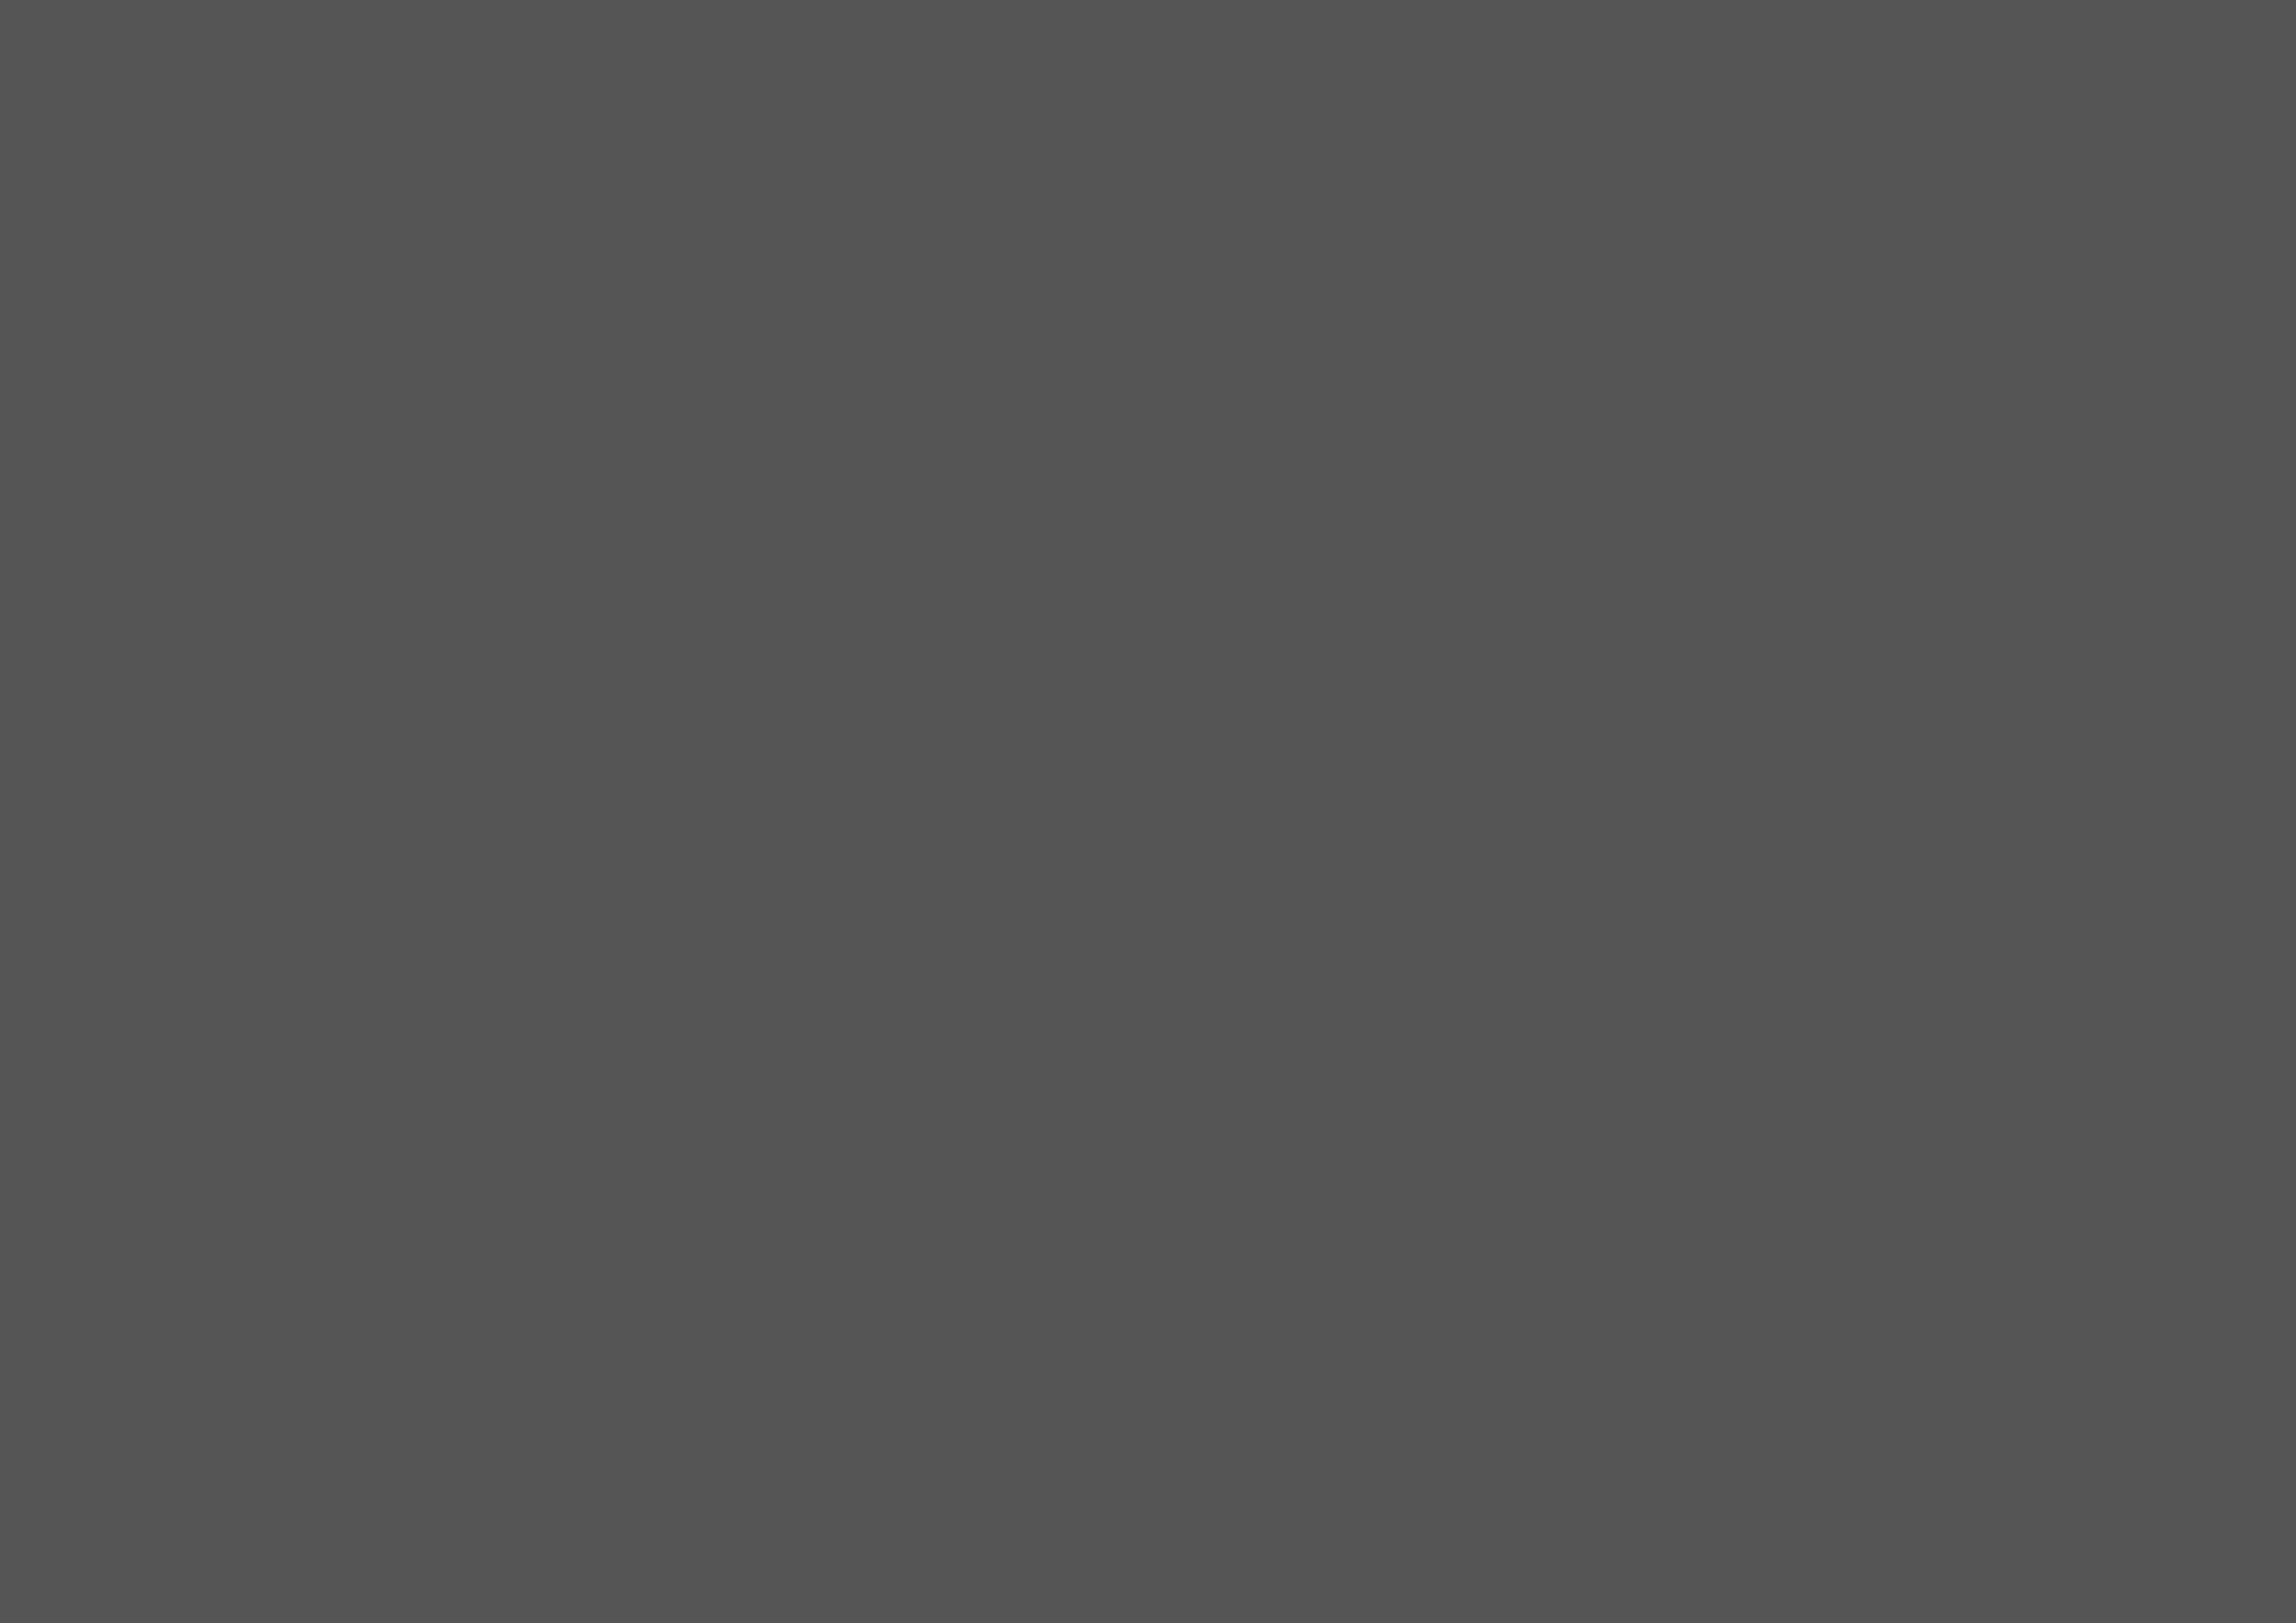 3508x2480 Davys Grey Solid Color Background